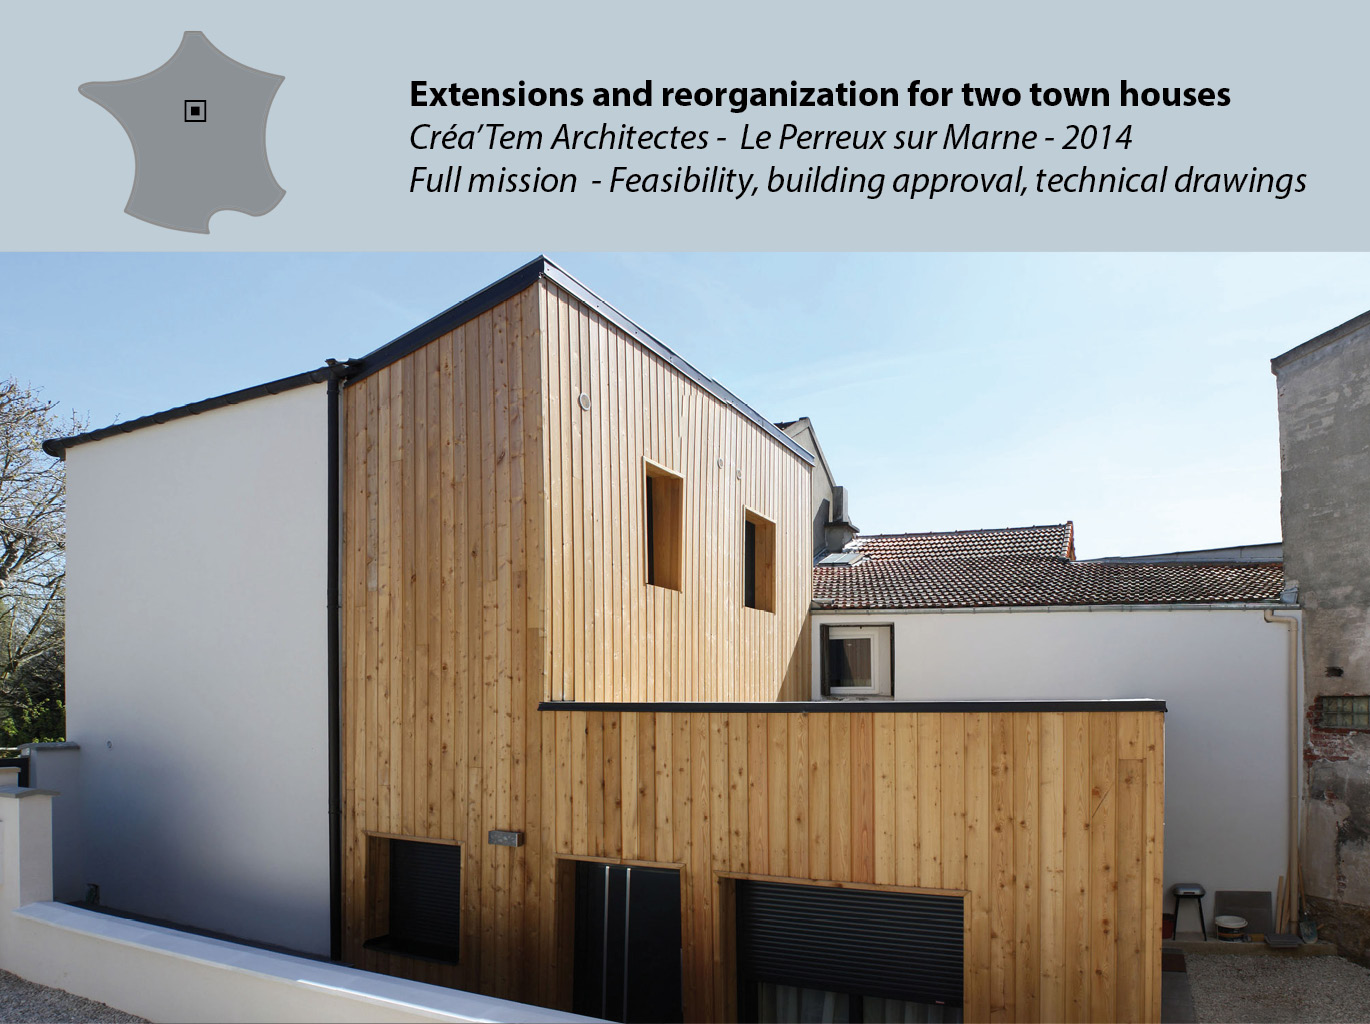 Extensions and reorganization of two town houses